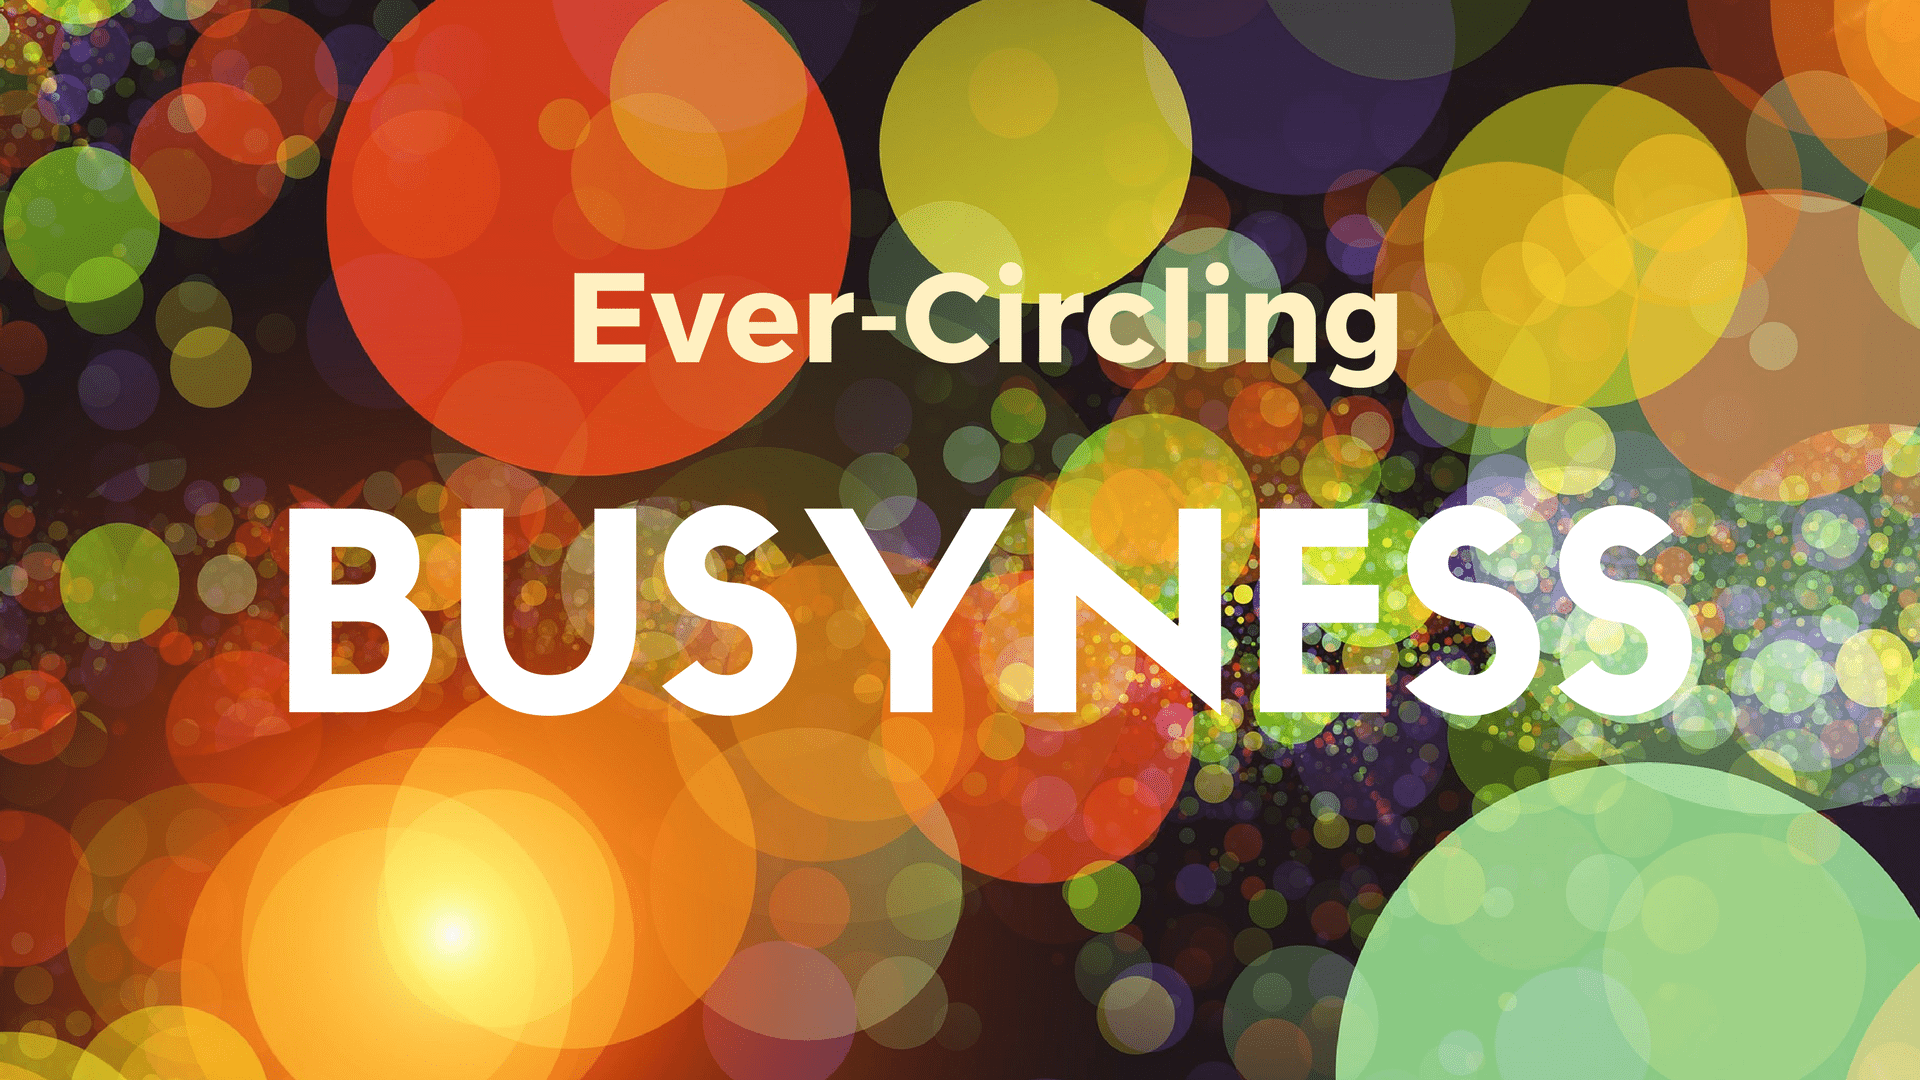 Ever circling busyness - Canva - Pixabay background